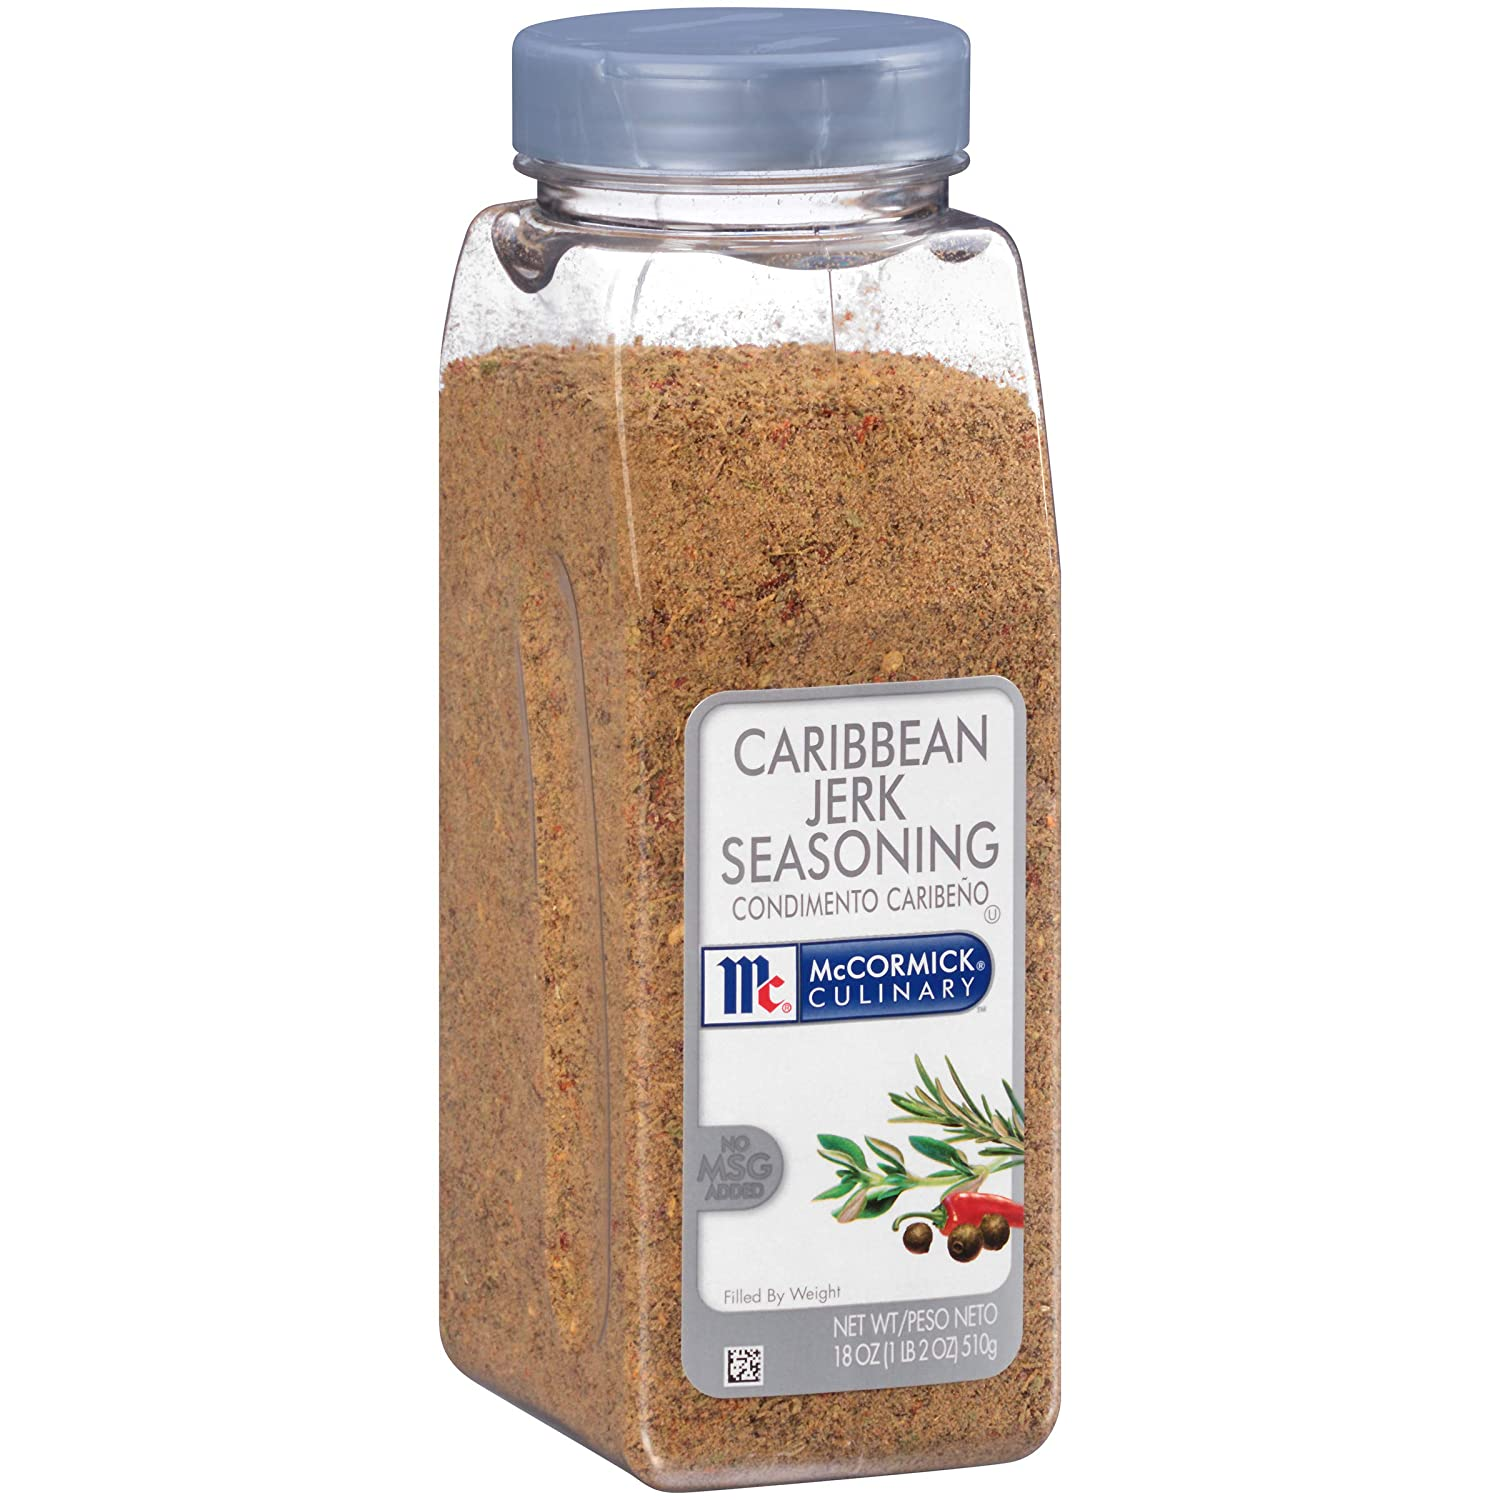 McCormick Culinary Caribbean Jerk Seasoning, 18 oz